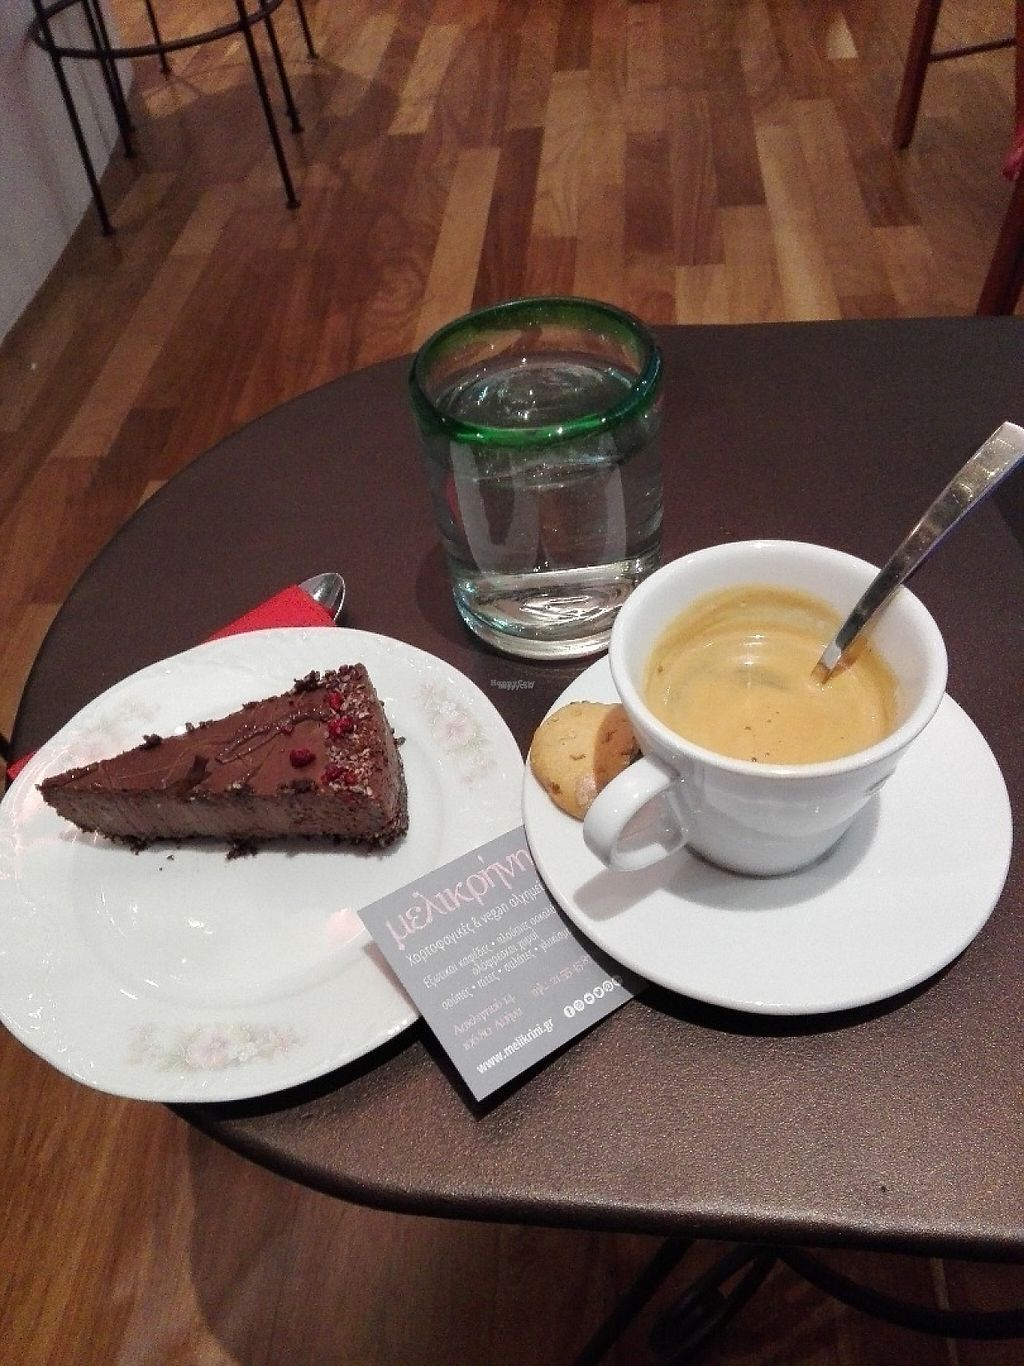 "Photo of Melikrini  by <a href=""/members/profile/ElisaGR"">ElisaGR</a> <br/>Chocamole raw chocolate vegan cake and decaf double espresso. Both of great quality! <br/> January 22, 2017  - <a href='/contact/abuse/image/83792/214550'>Report</a>"